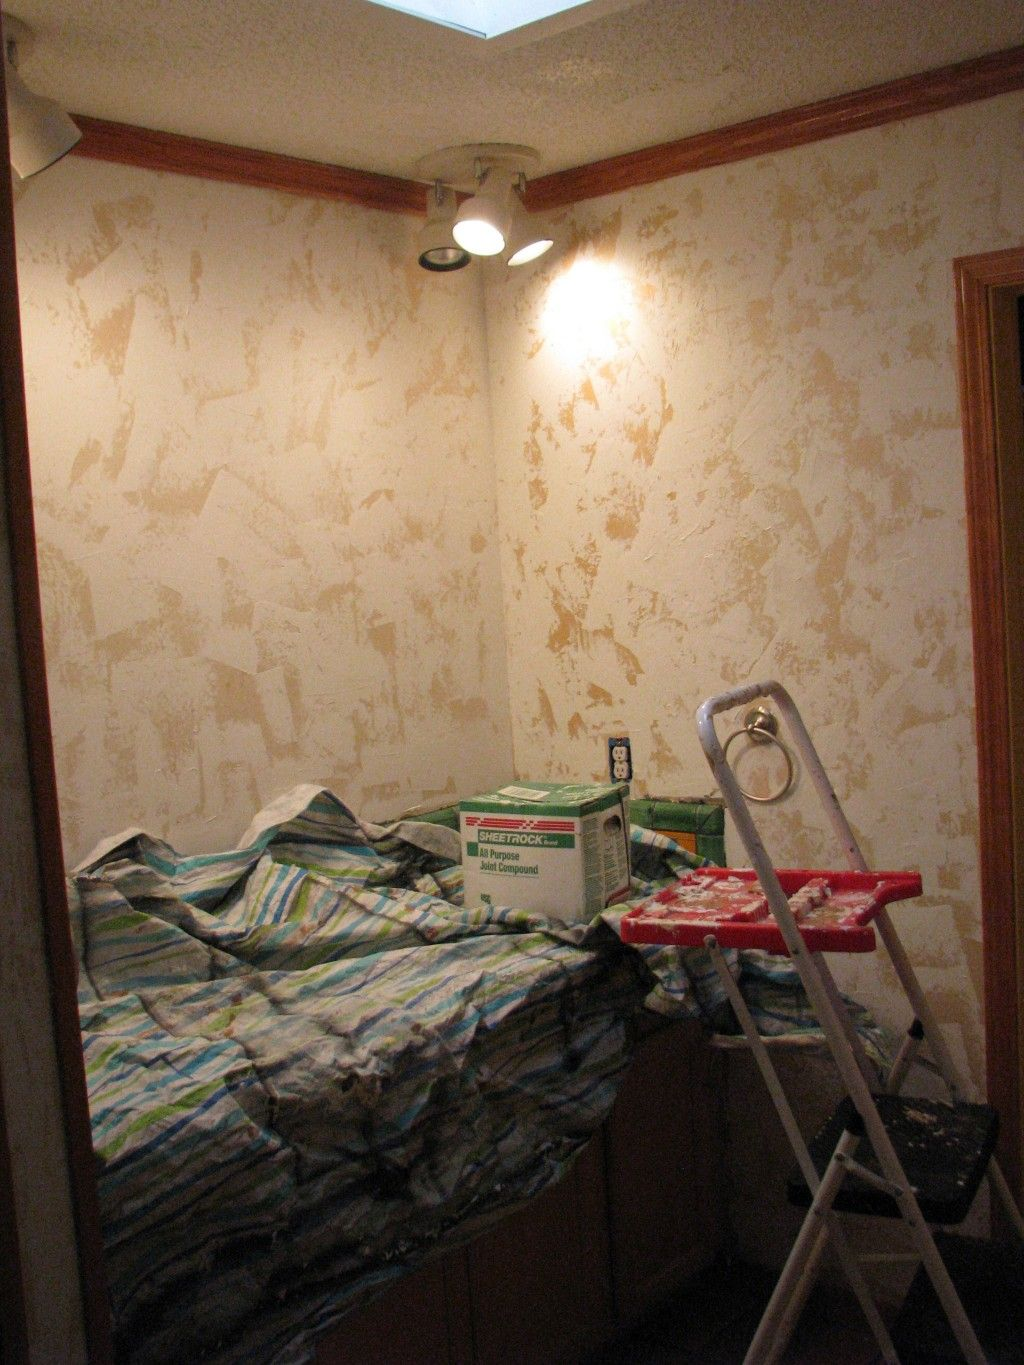 How to Hand-Plaster Walls to Cover Wallpaper and Damage | Home DIY Projects | Pinterest ...